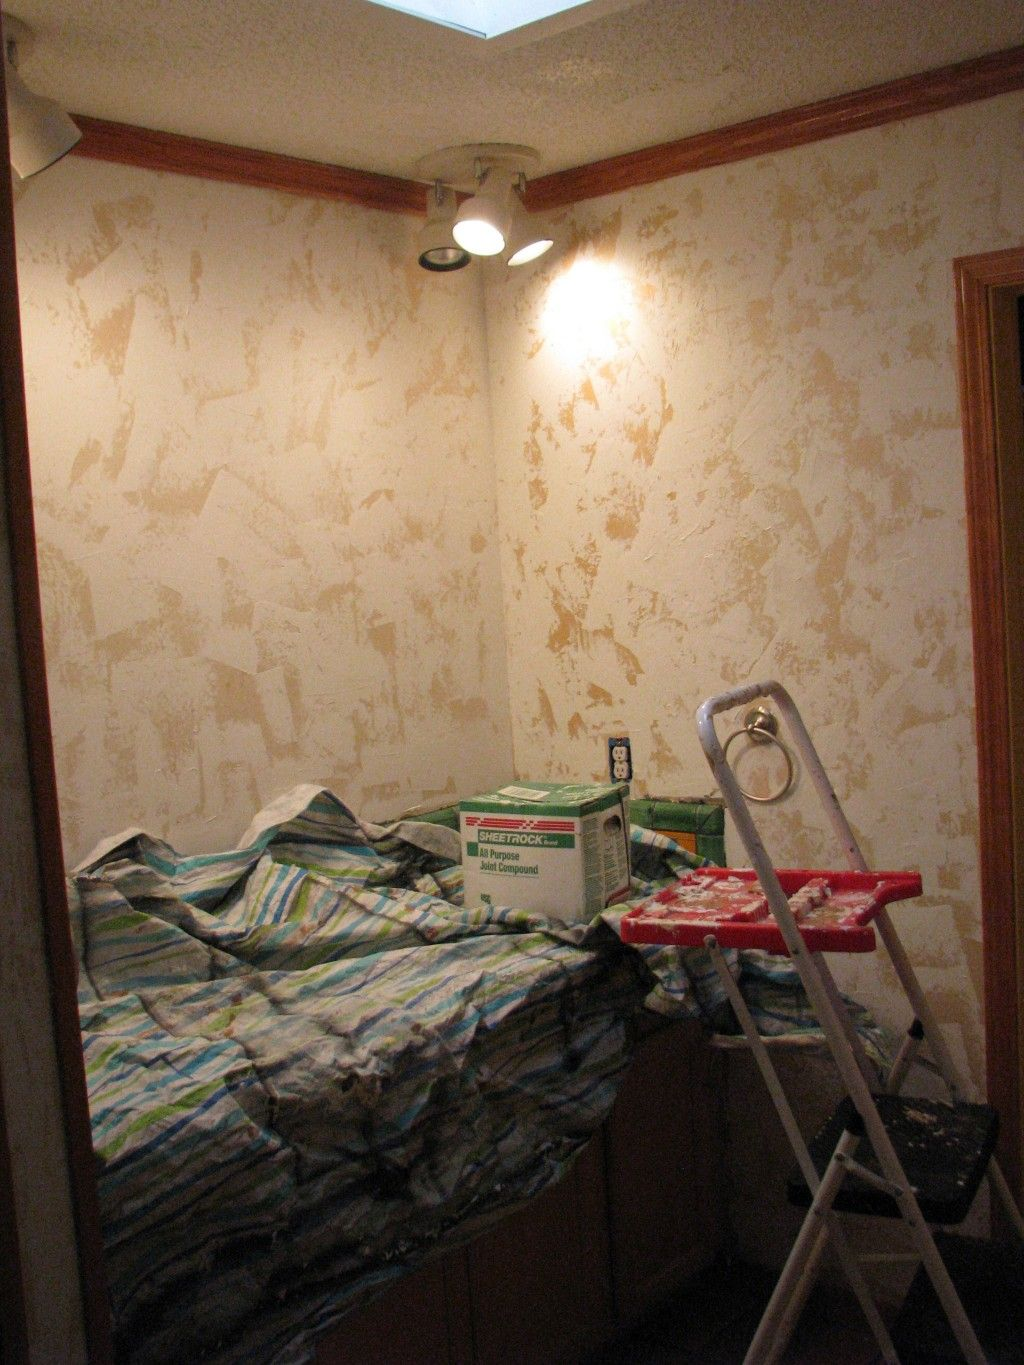 How to Hand-Plaster Walls to Cover Wallpaper and Damage | Home DIY Projects | Pinterest ...